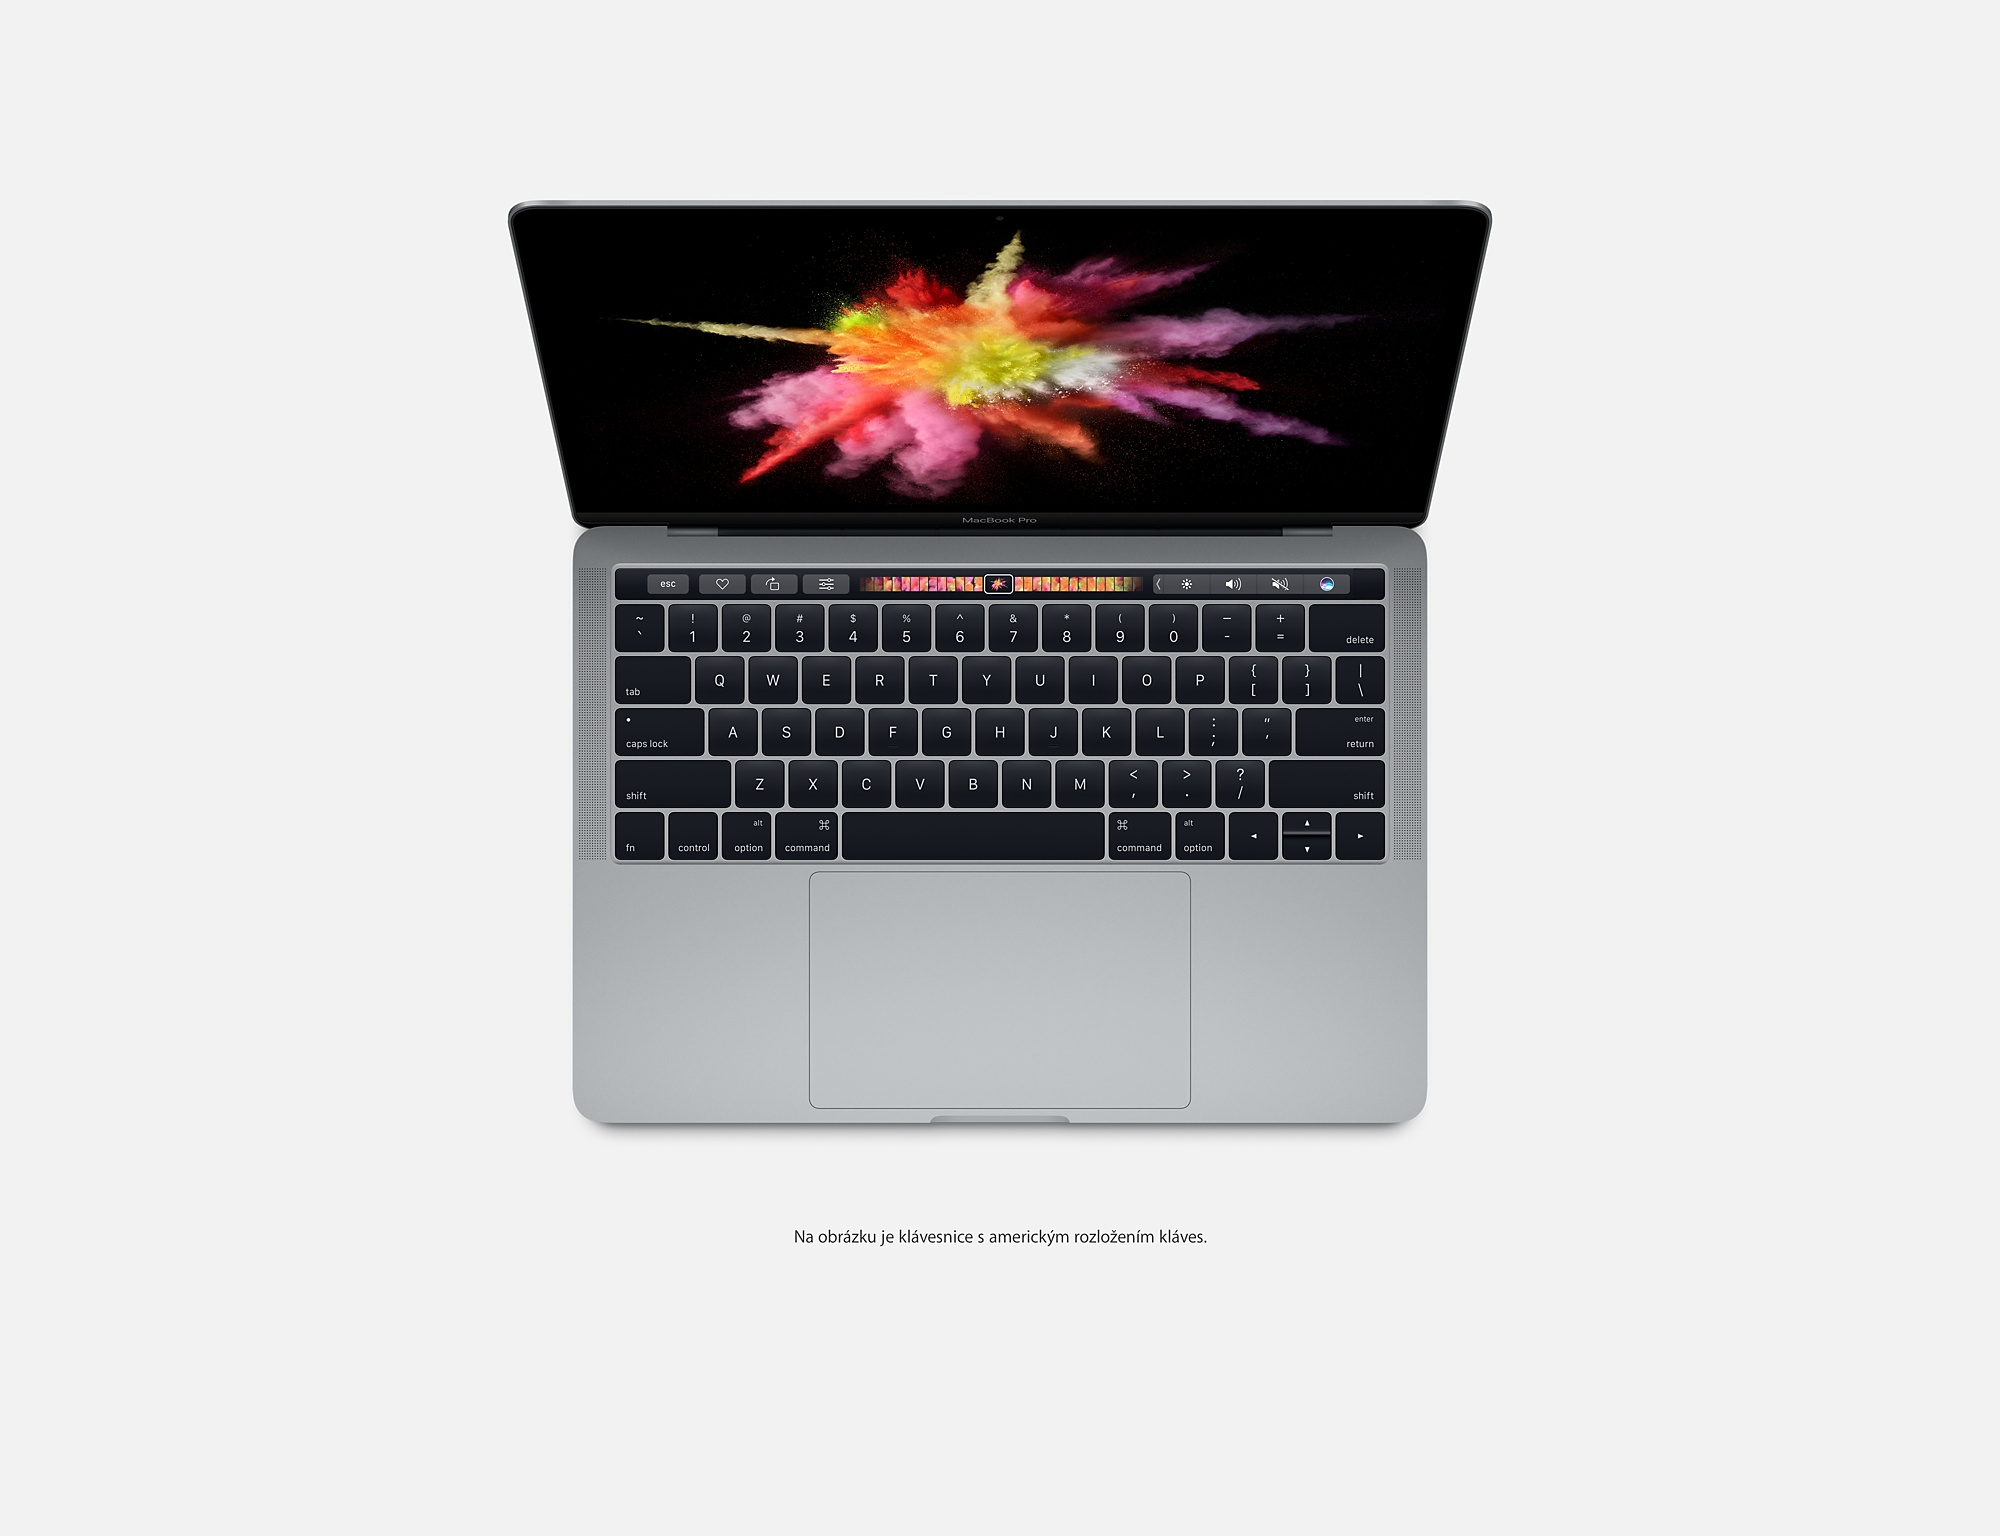 MacBook Pro 13'' i5 2.9GHz/8G/256/TB/SK/Sp Gray